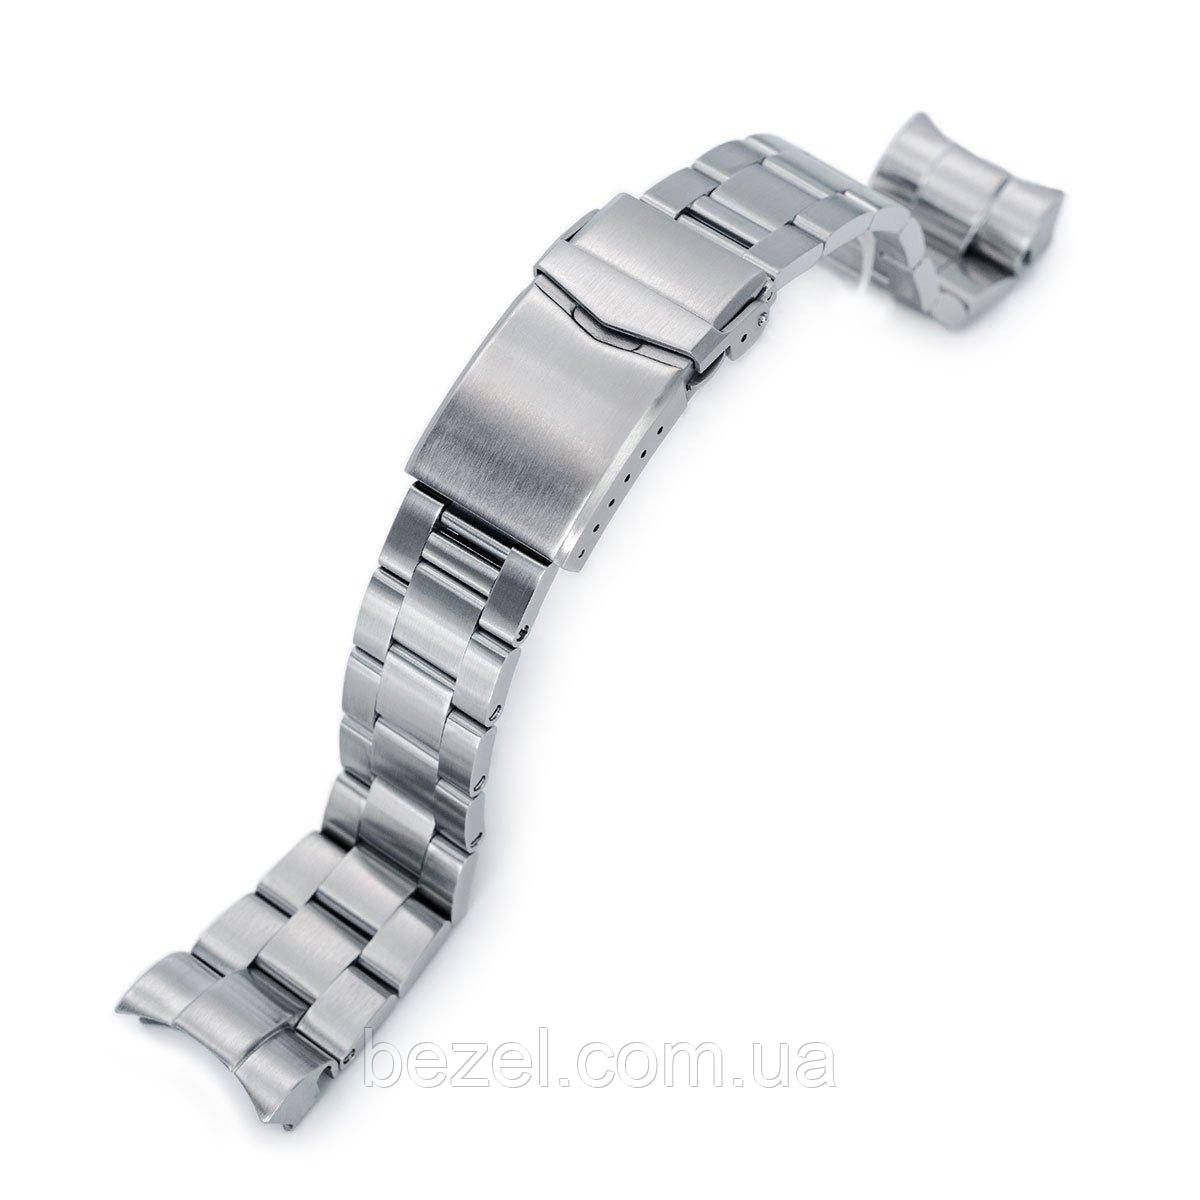 22mm Super 3D Oyster 316L Stainless Steel Watch Bracelet for Tudor Black Bay, V-Clasp Brushed